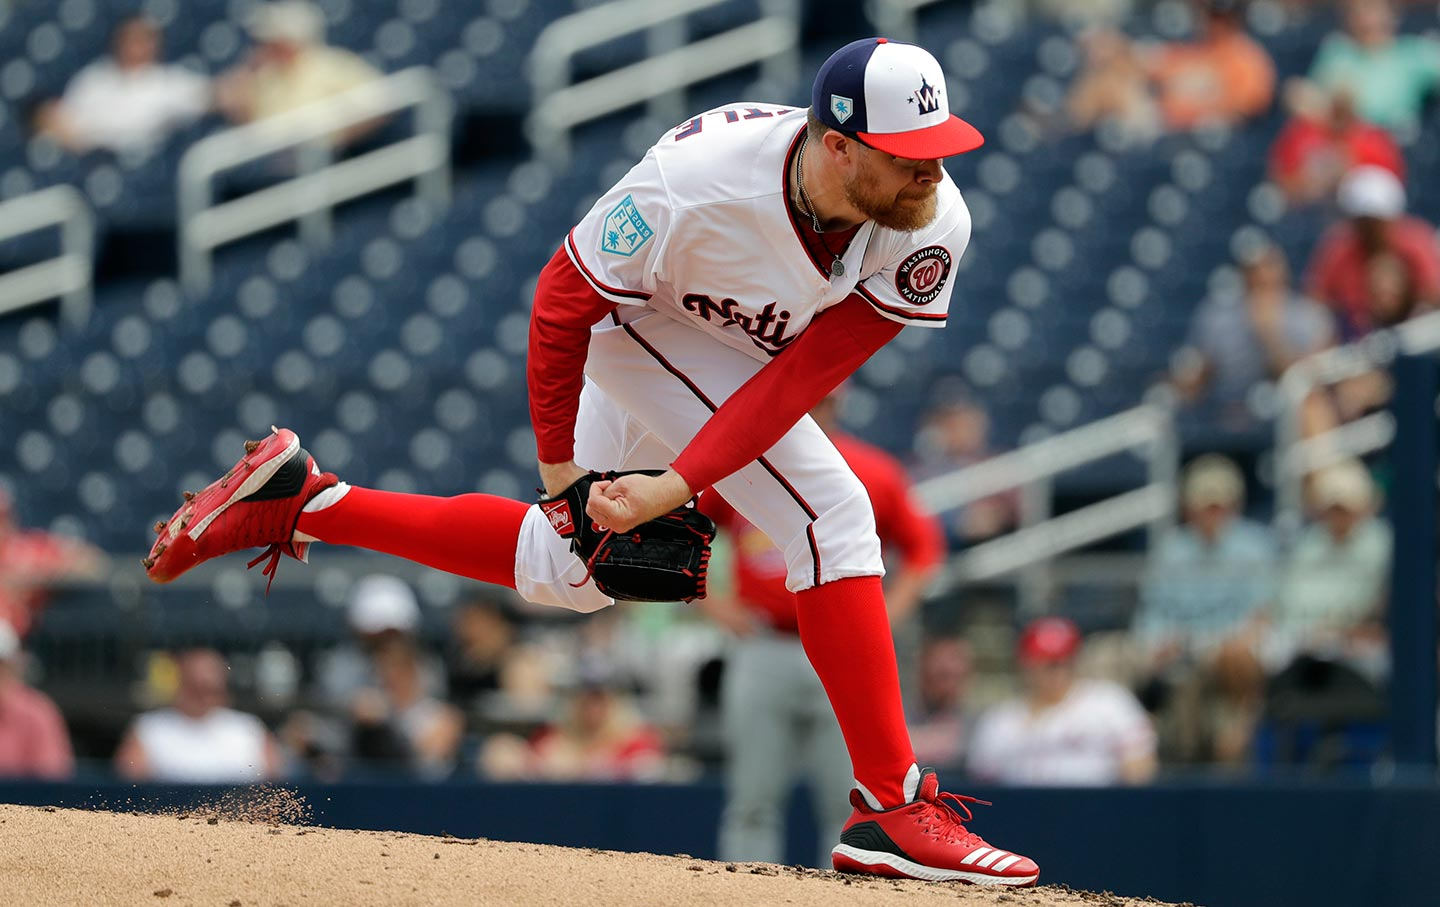 Washington Nationals pitcher Sean Doolittle in a baseball game in February.  (AP Photo   Jeff Roberson) 4d5582c4f37